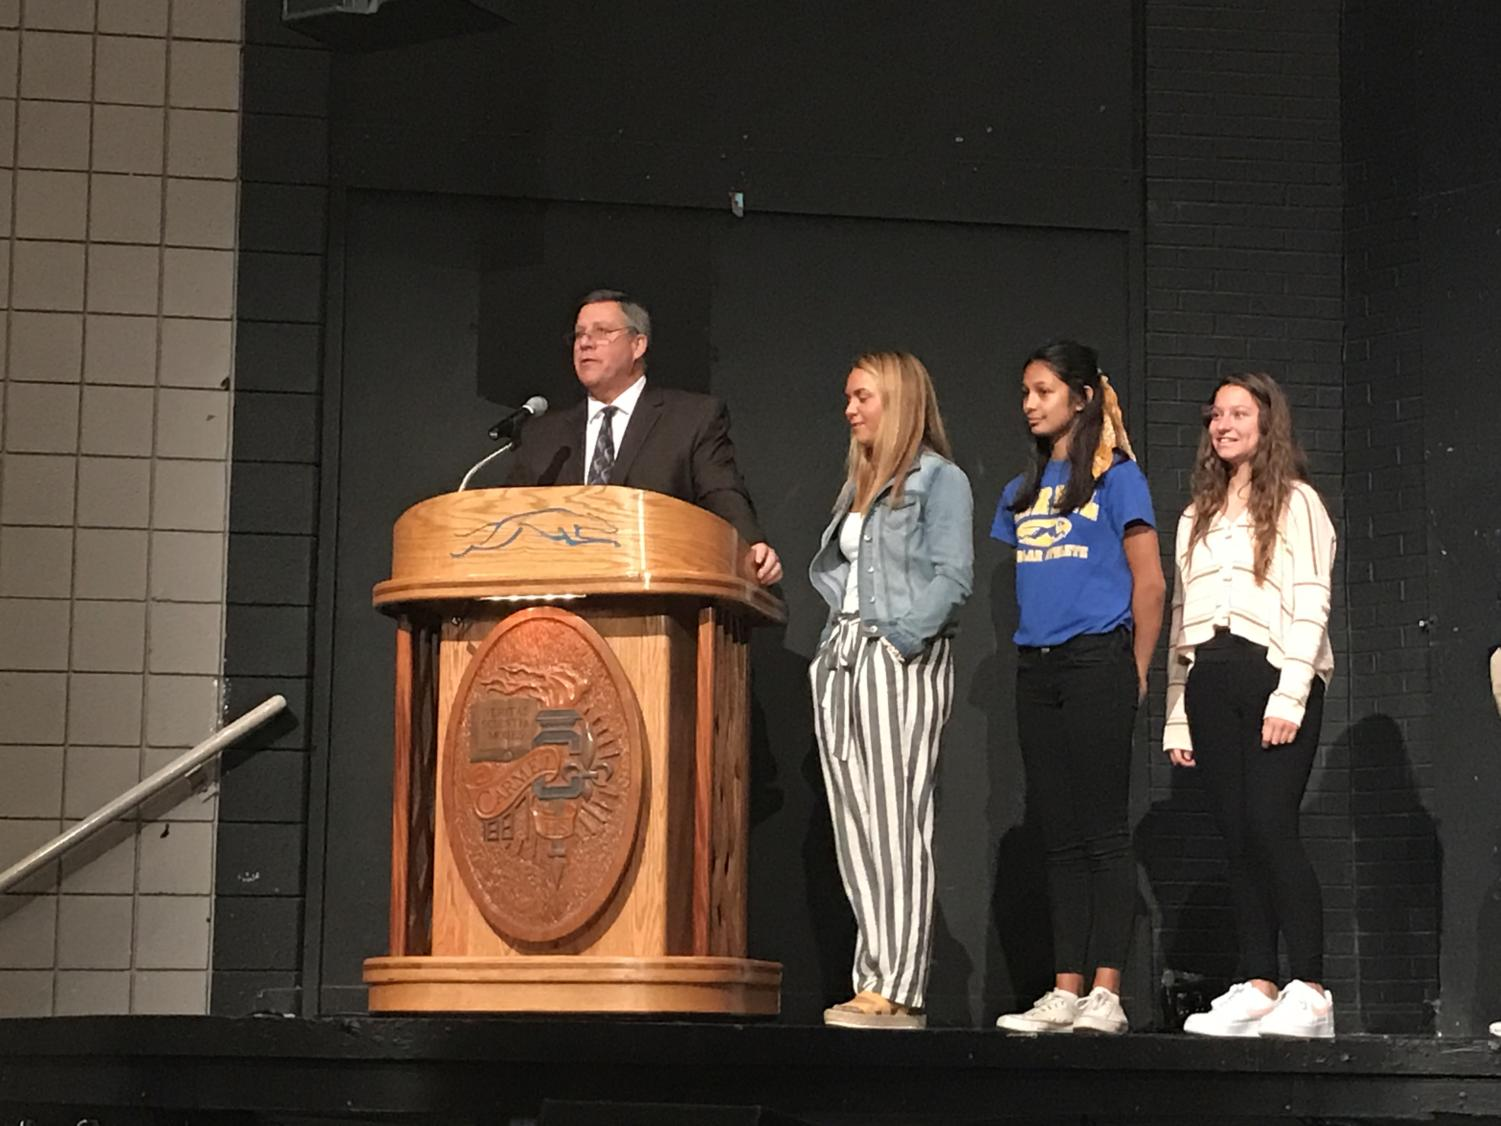 At a student recognition convocation on May 15, Principal Tom Harmas presents to students in the auditorium as well as through a CHTV broadcast, alongside senior class president Meredith Lipps, junior class president Ana Mercado and sophomore class president Mia Bruder. Harmas said he is currently working on hiring teachers for next year and drafting a potential new schedule with a later start for high school students.